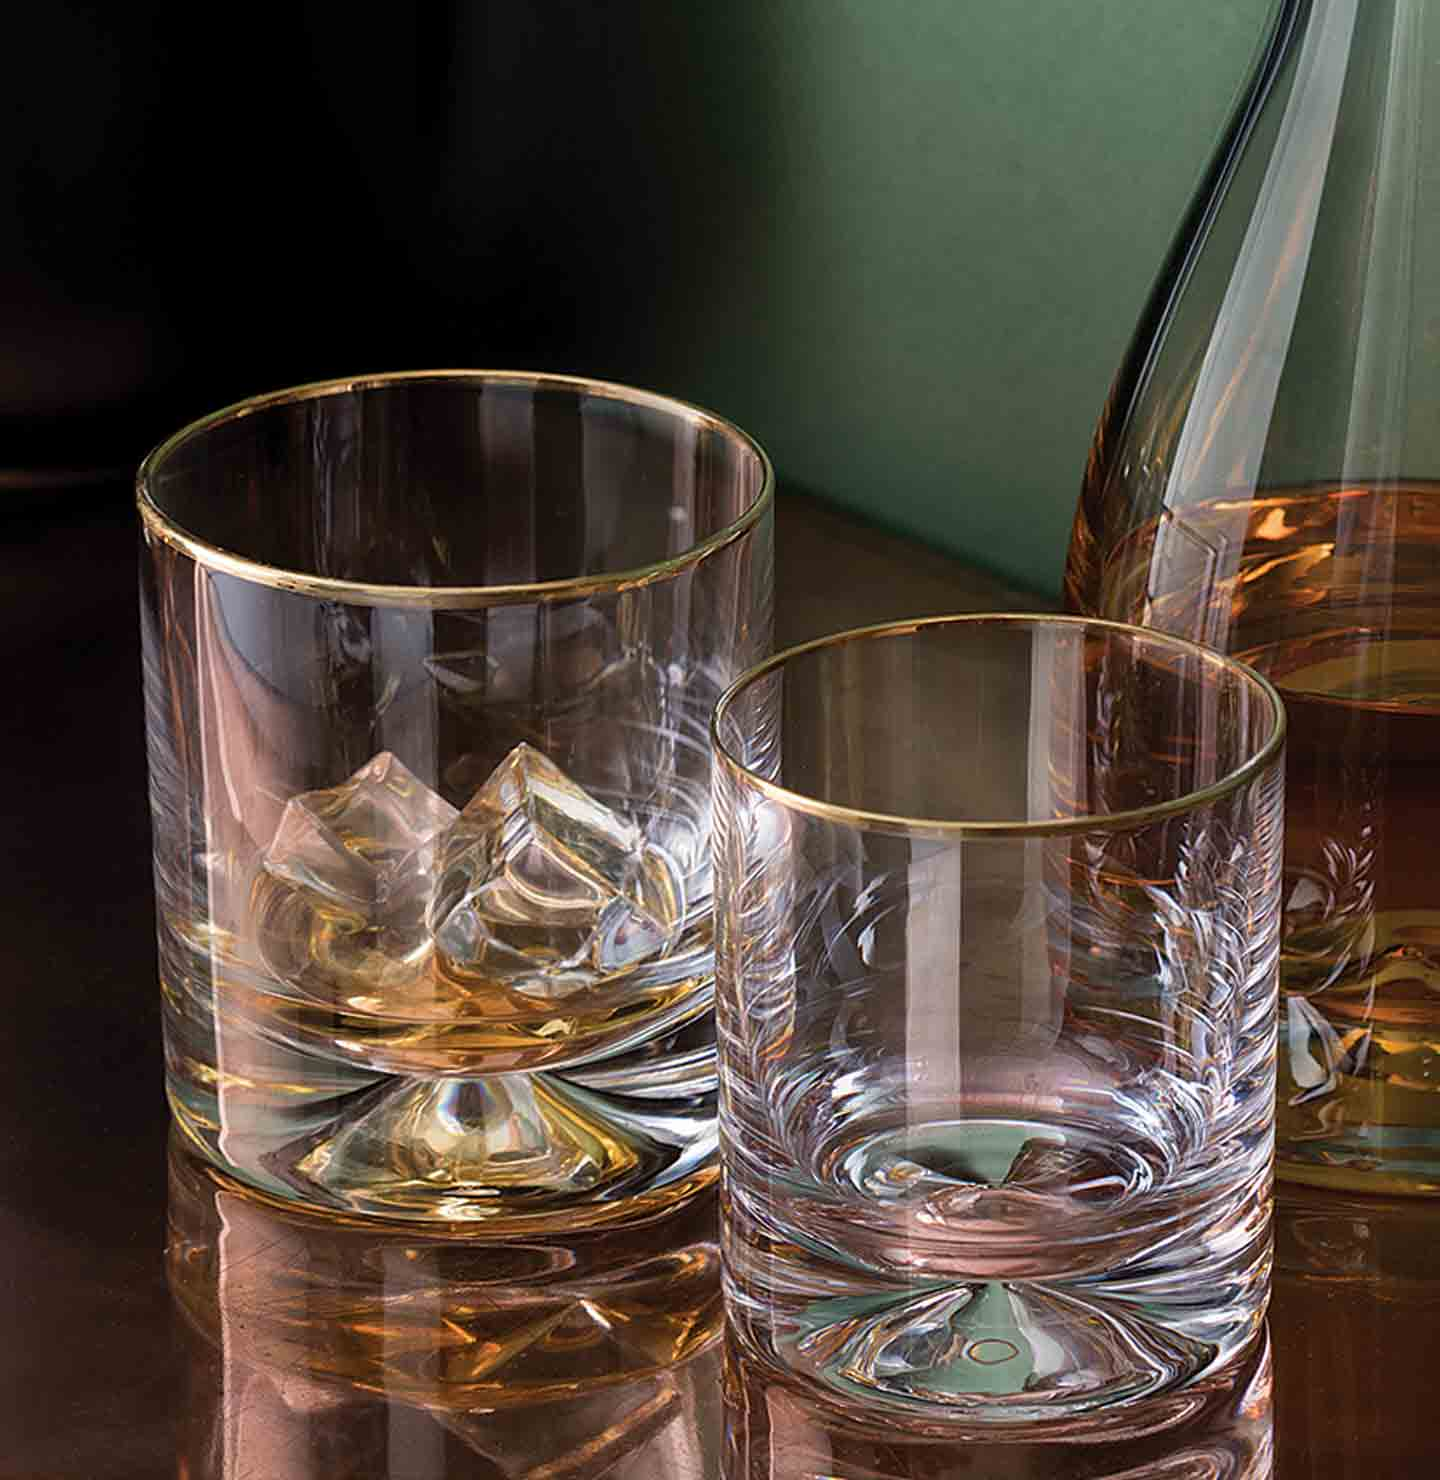 Drinksware from Dartington Crystal